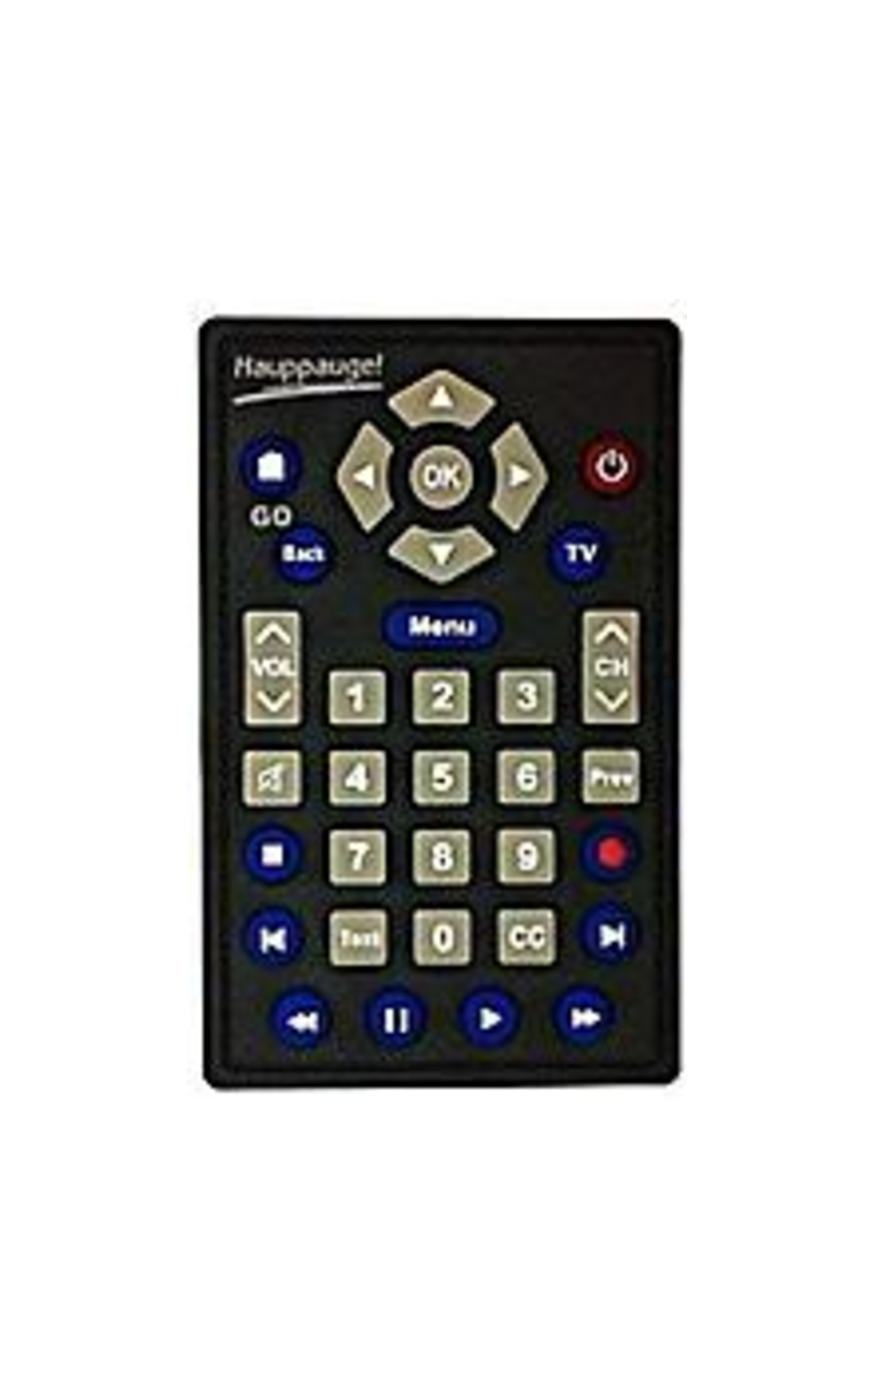 Hauppauge R-005 Remote Control with Cr-2025 Battery for 955Q Hybrid TV Stick